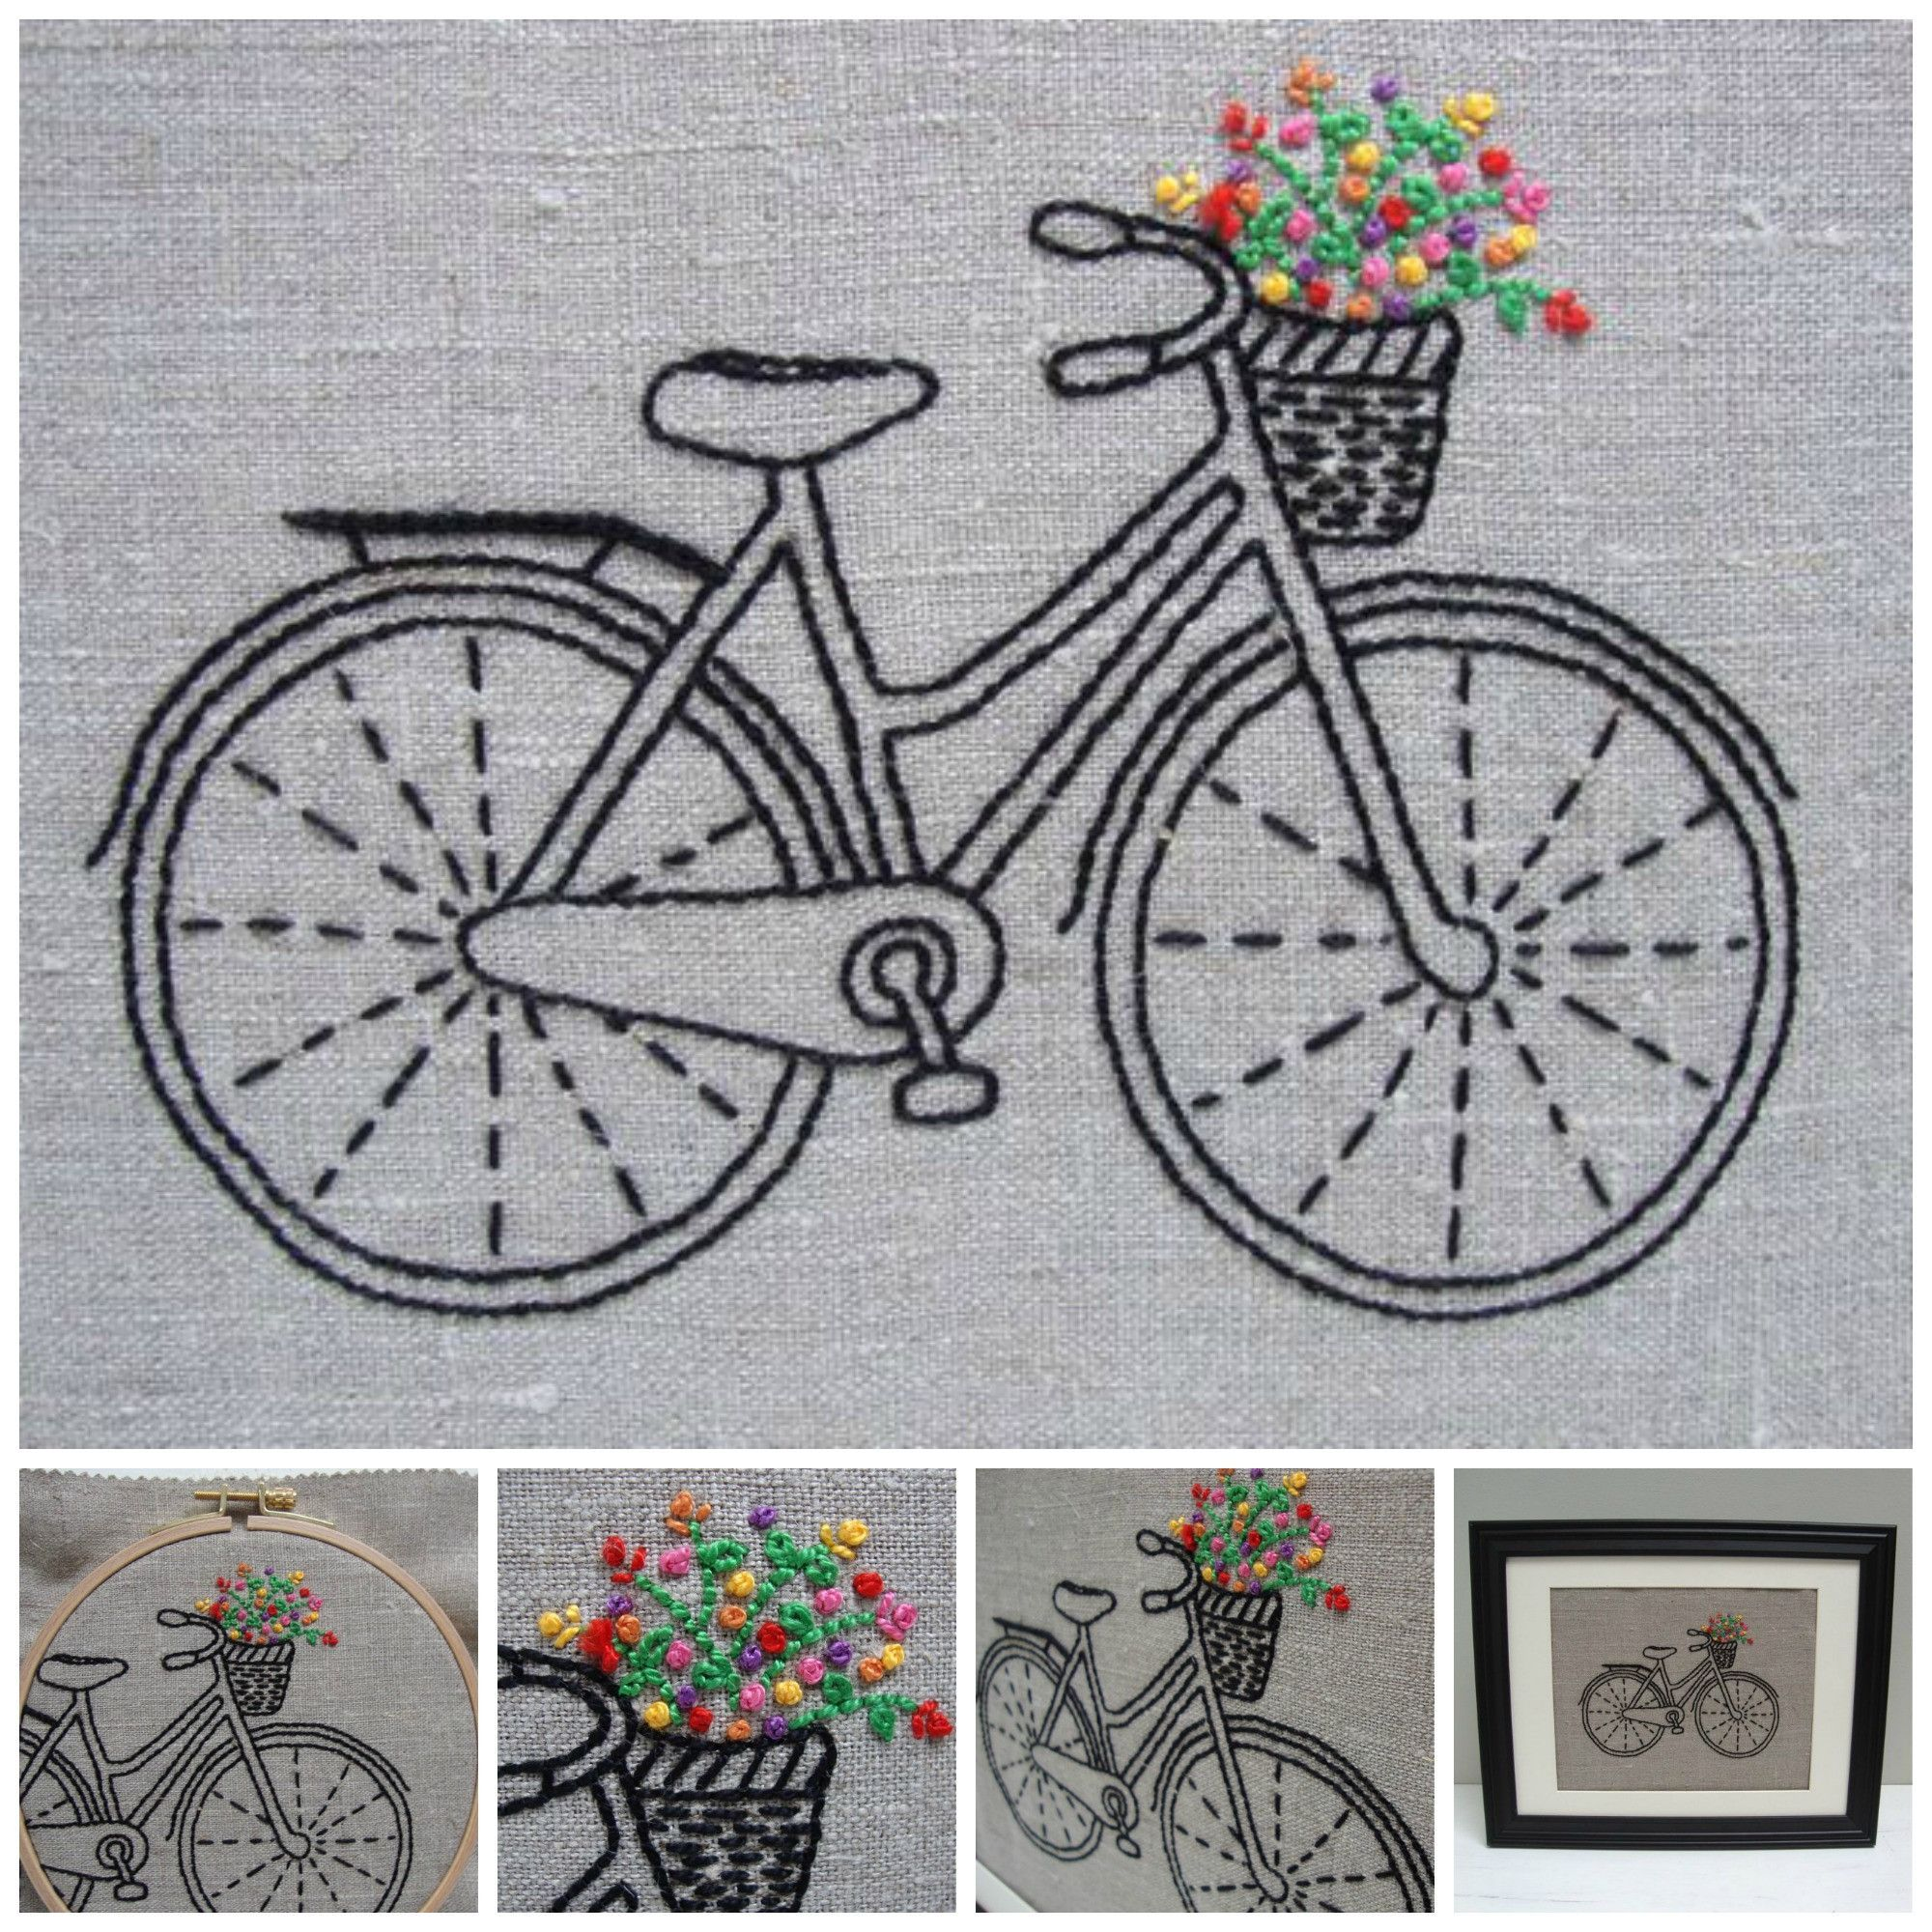 Easy DIY embroidery hoop art kit! Stitch your way to bliss with this bicycle embroidery kit. A fresh design combined with quality materials and easy-to-follow instructions make this a delightful exper